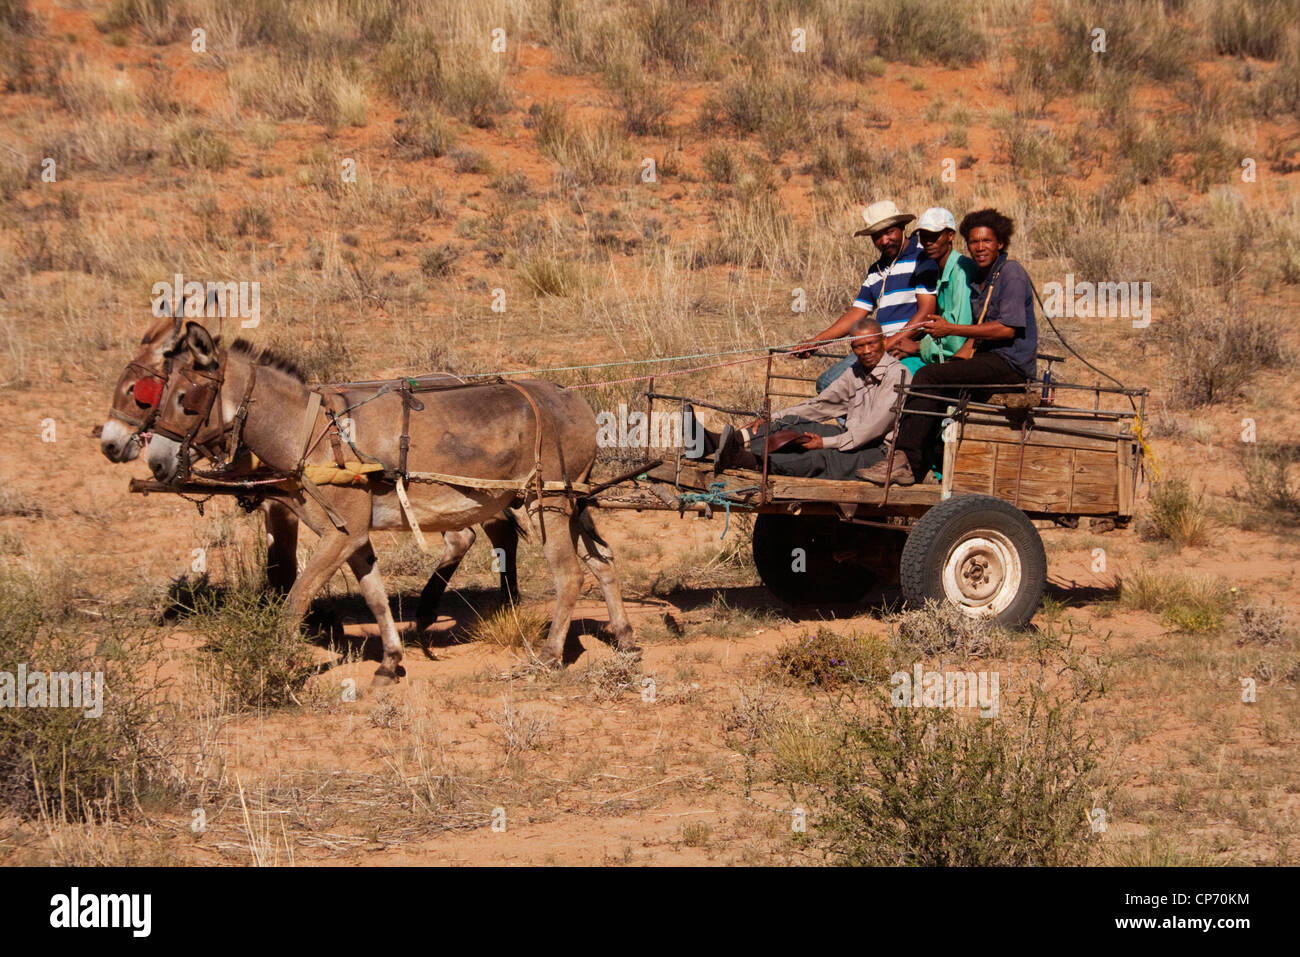 Kalahari locals riding on a donkey cart near Molopo - Stock Image